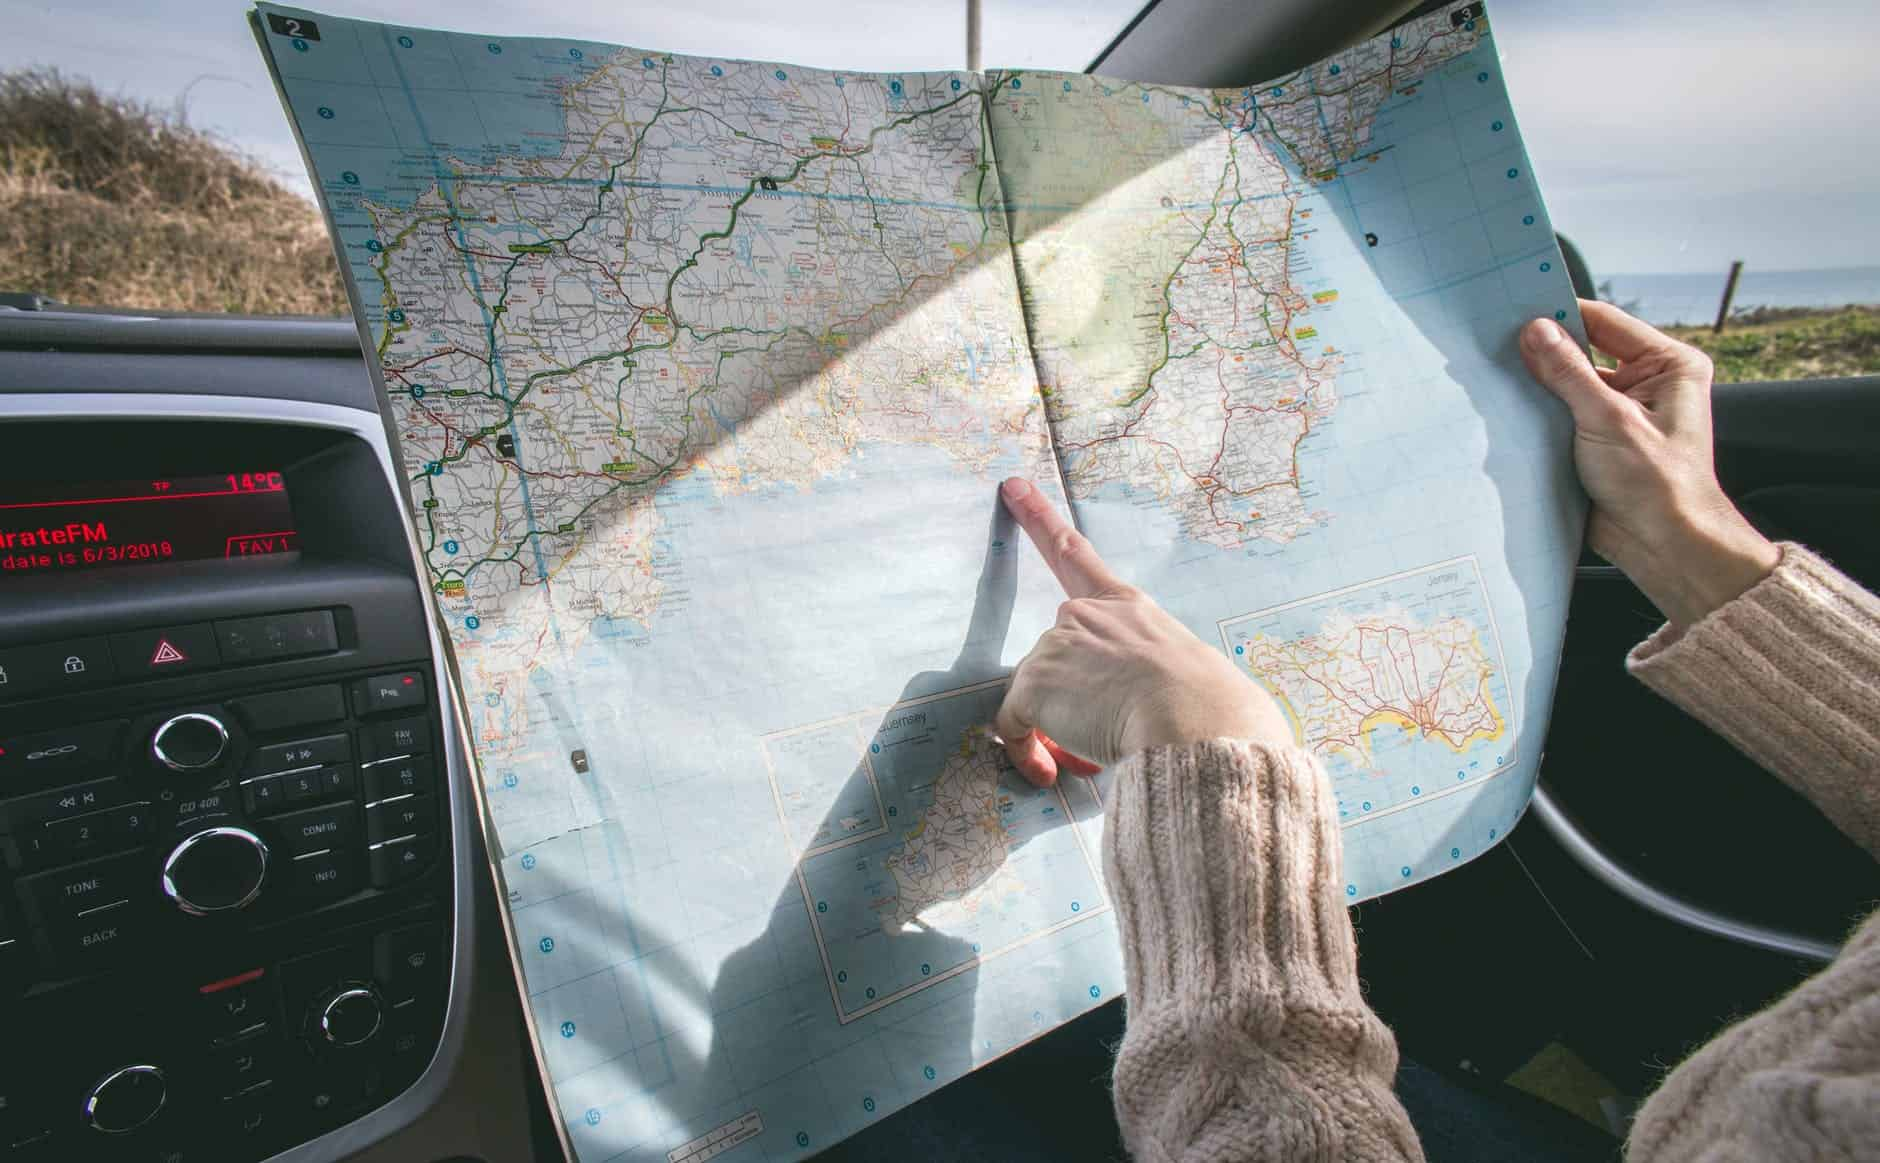 Finding the anchor destination is important planning for a road trip. best road trip planner.